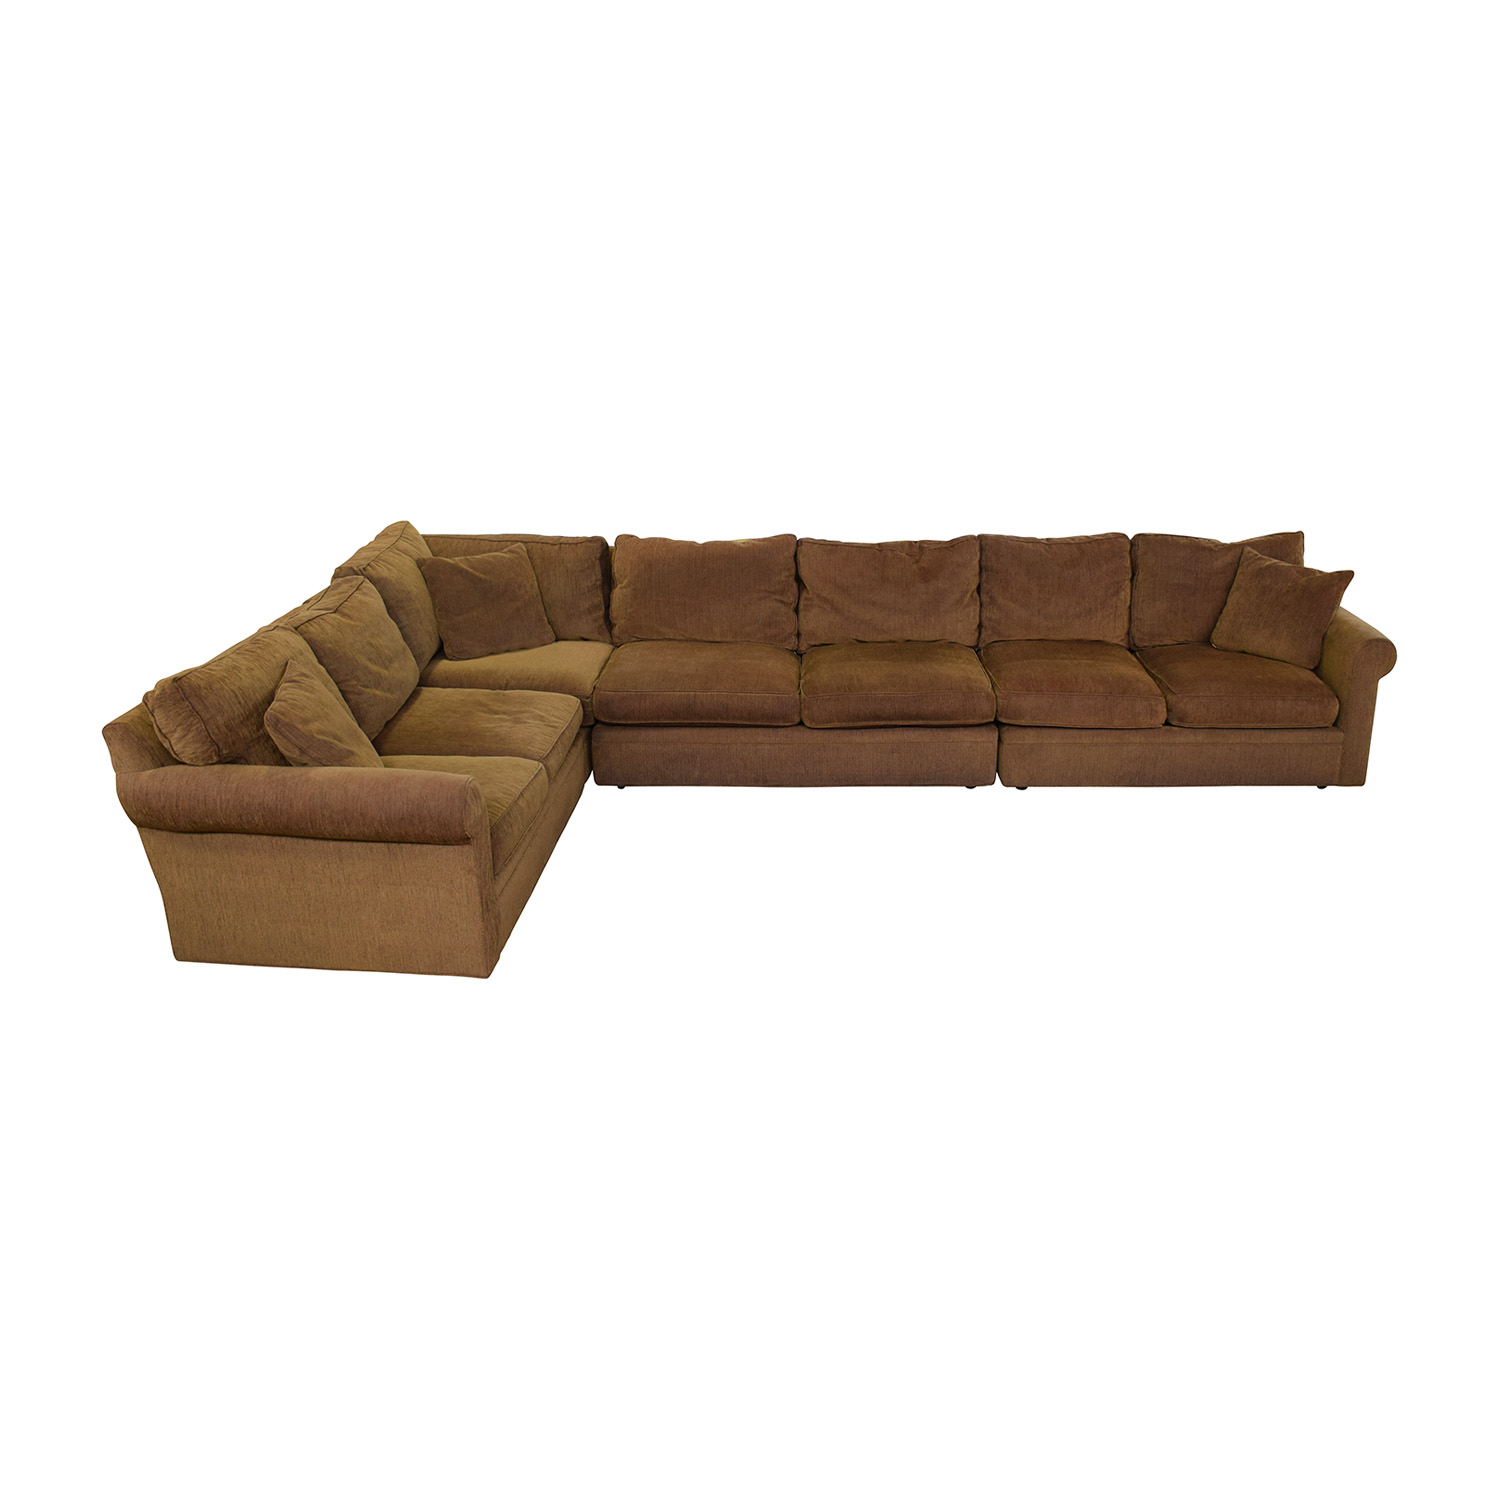 Crate & Barrel Modular Sectional Sofa Crate & Barrel